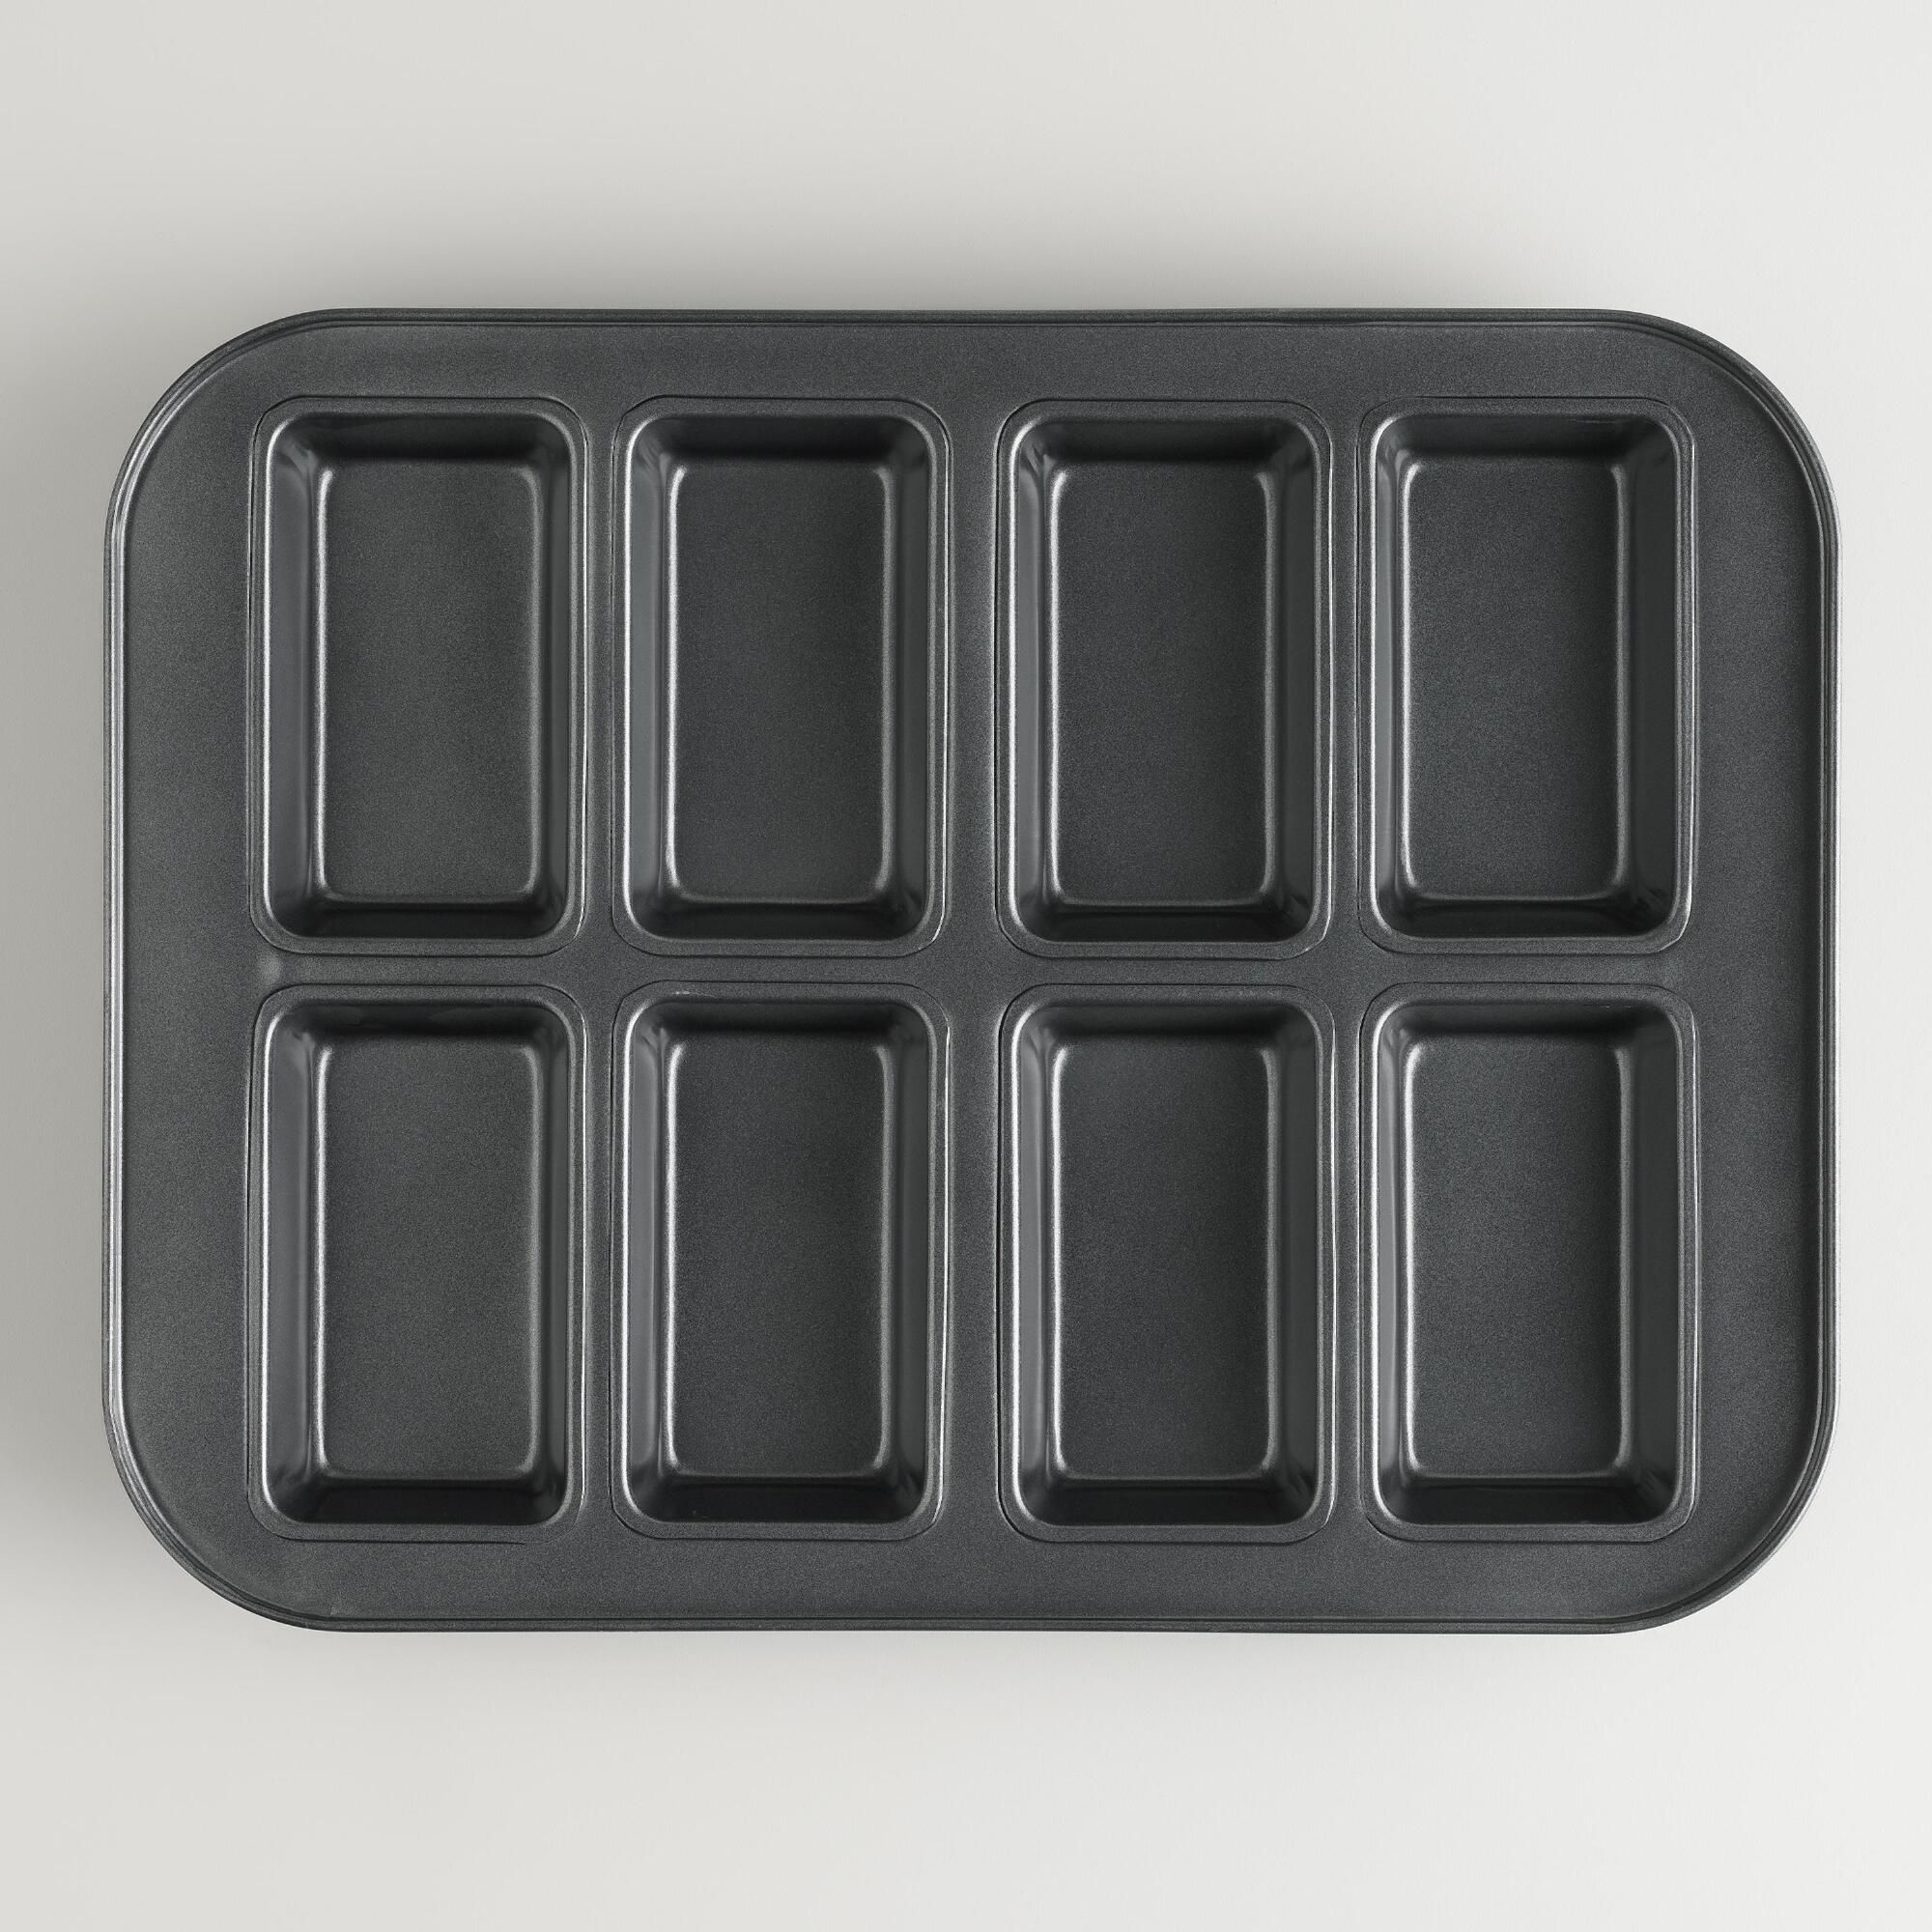 Use our exclusive 8-Mold Mini Loaf Pan to bake up perfect individual loaves of delicious savory or sweet breads. It's great for bakers who love giving freshly baked gifts. The nonstick coating results in even browning when baking and easy release after cooling, while making cleanup a snap.